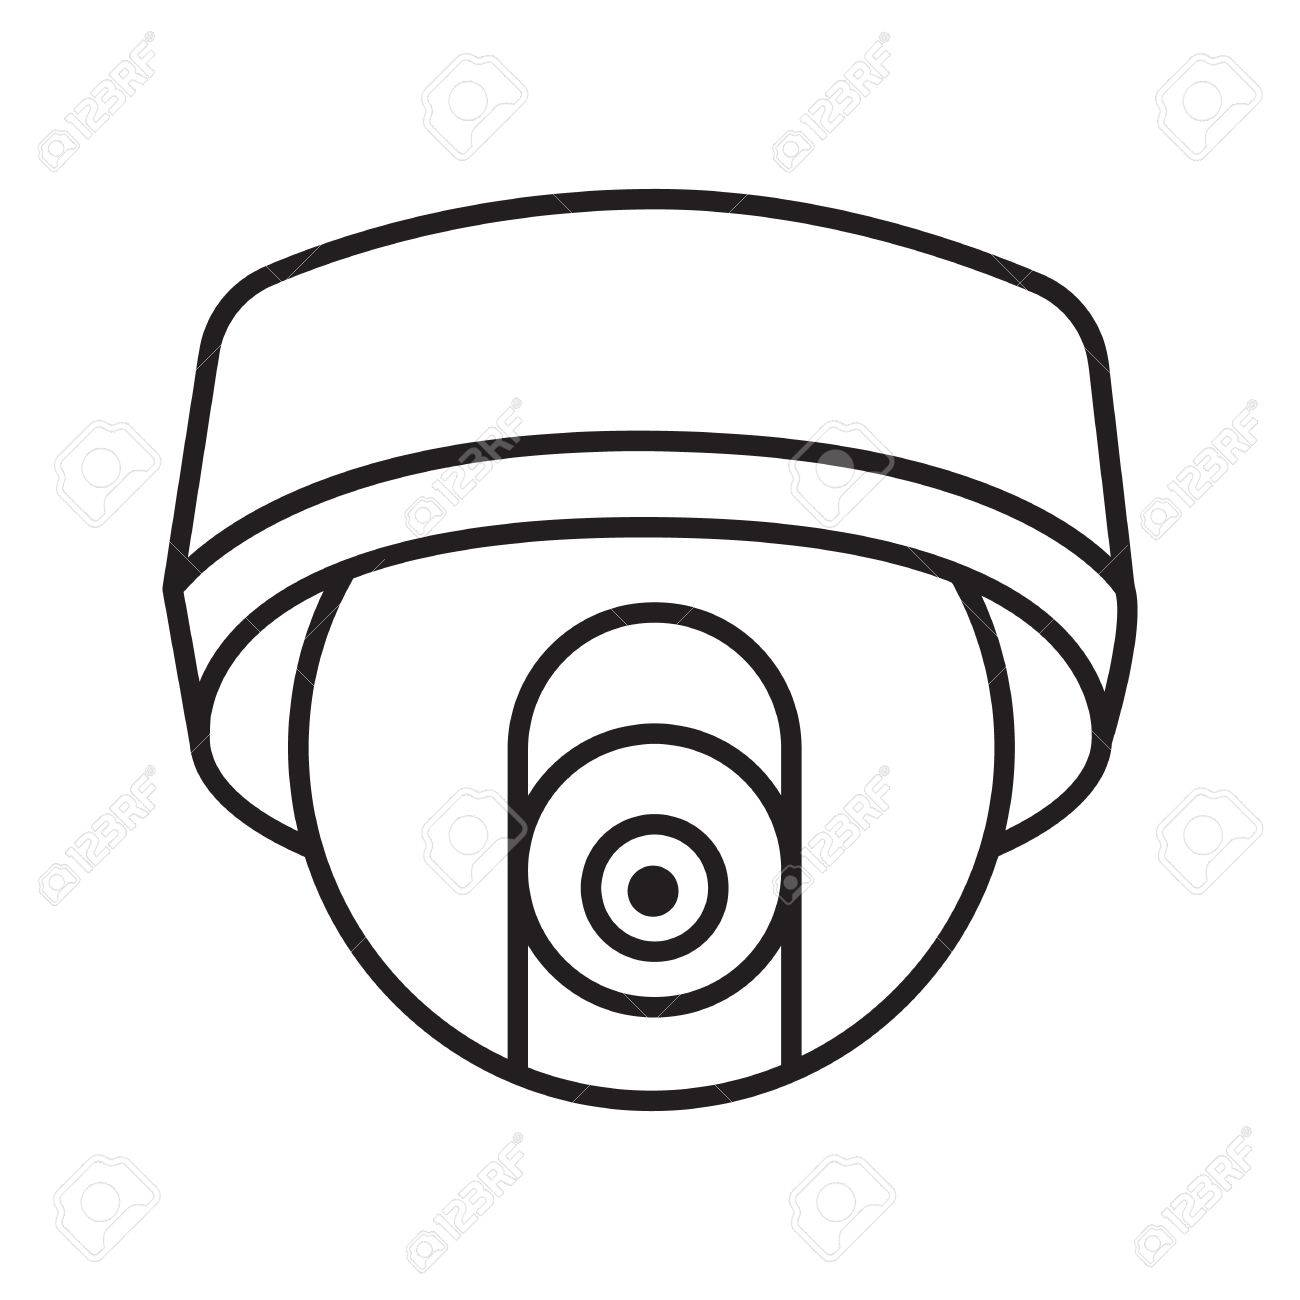 cctv camera drawing at getdrawings com